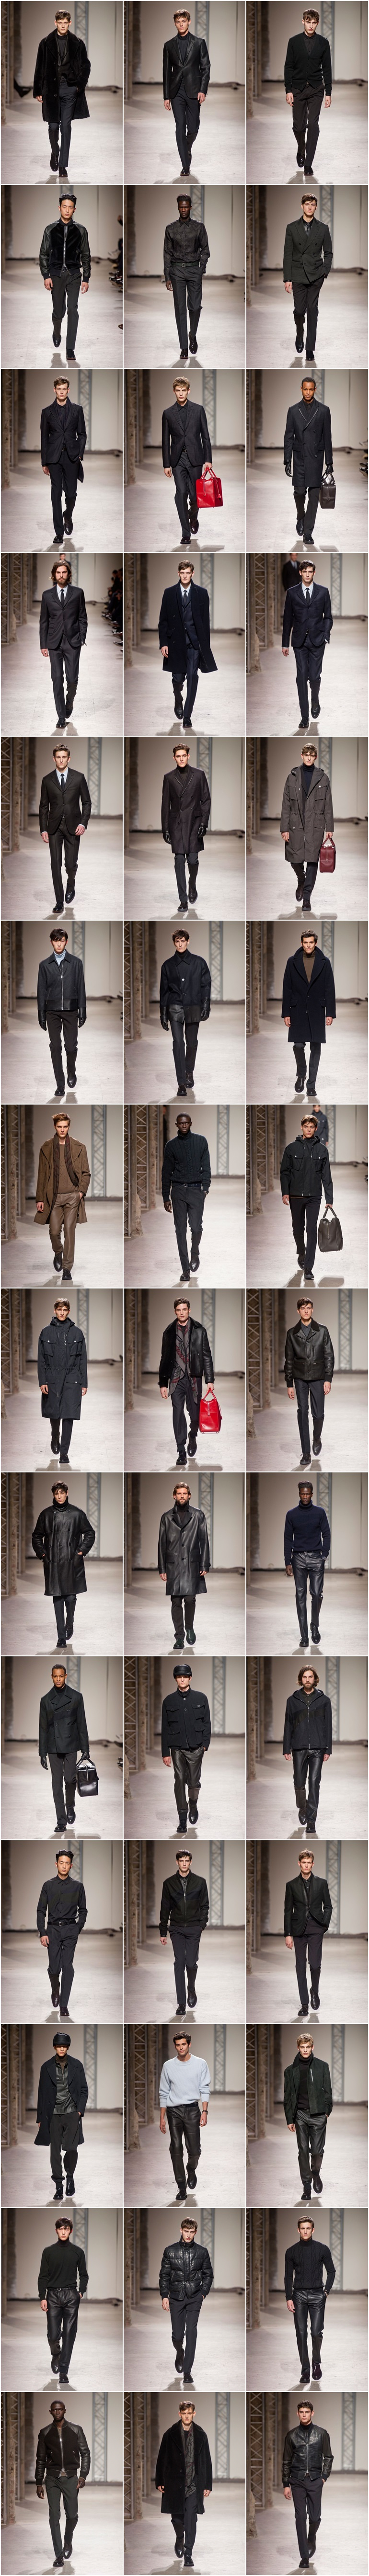 hermes-fall-winter-2014-show-ashion4addicts.com